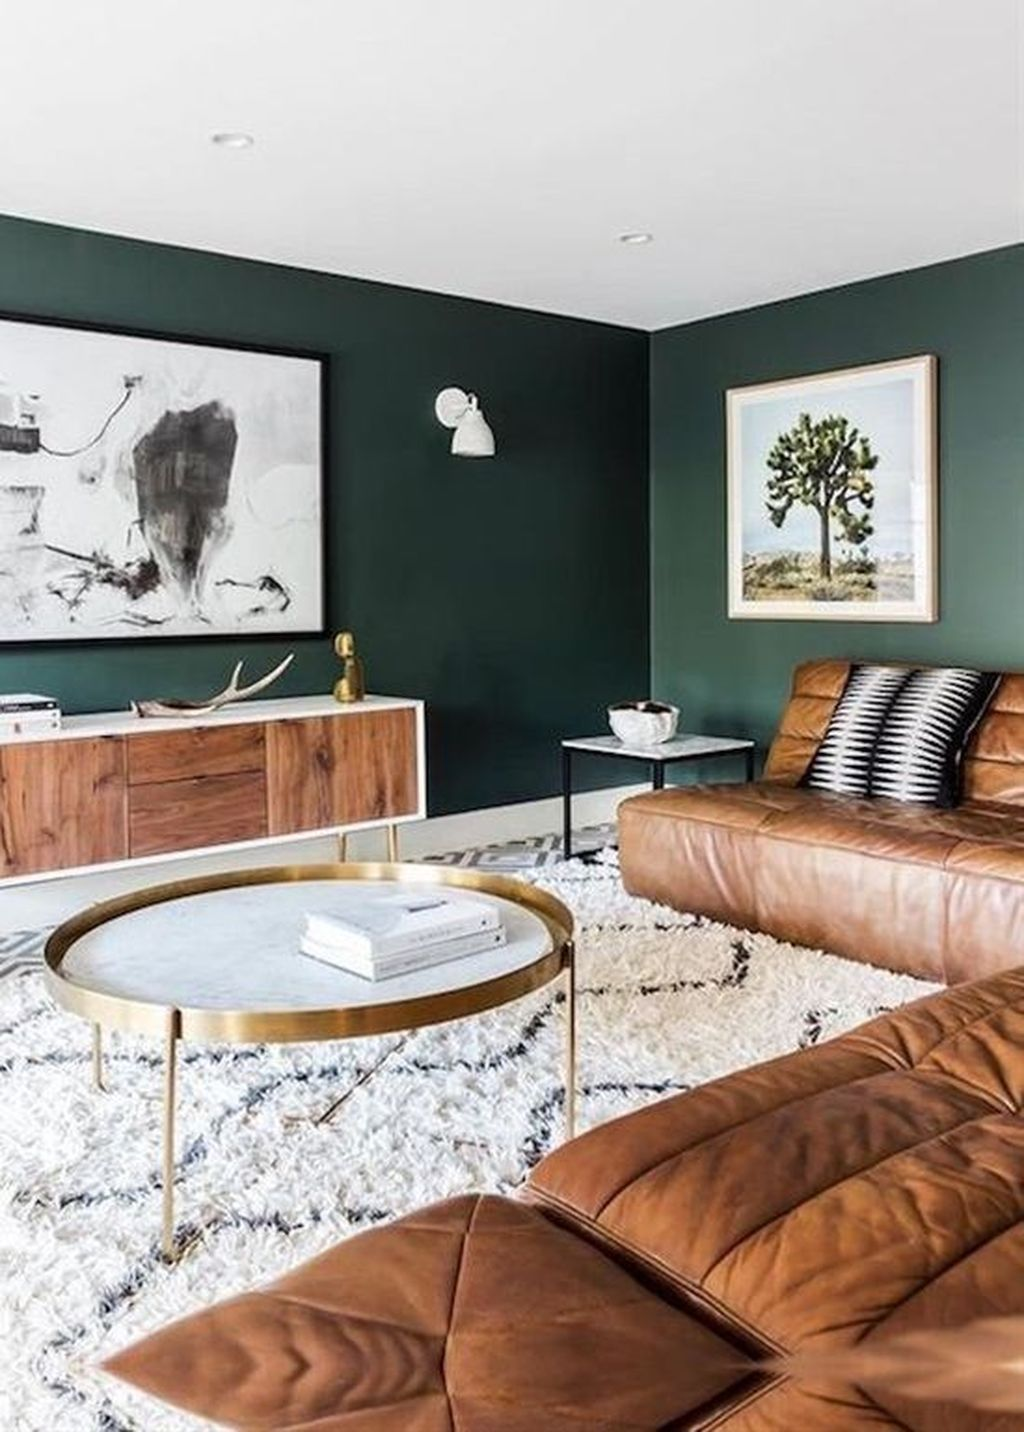 31 Admirable Modern Living Room Design Ideas You Should Copy Homyhomee In 2020 Mid Century Living Room Living Room Design Modern Living Decor